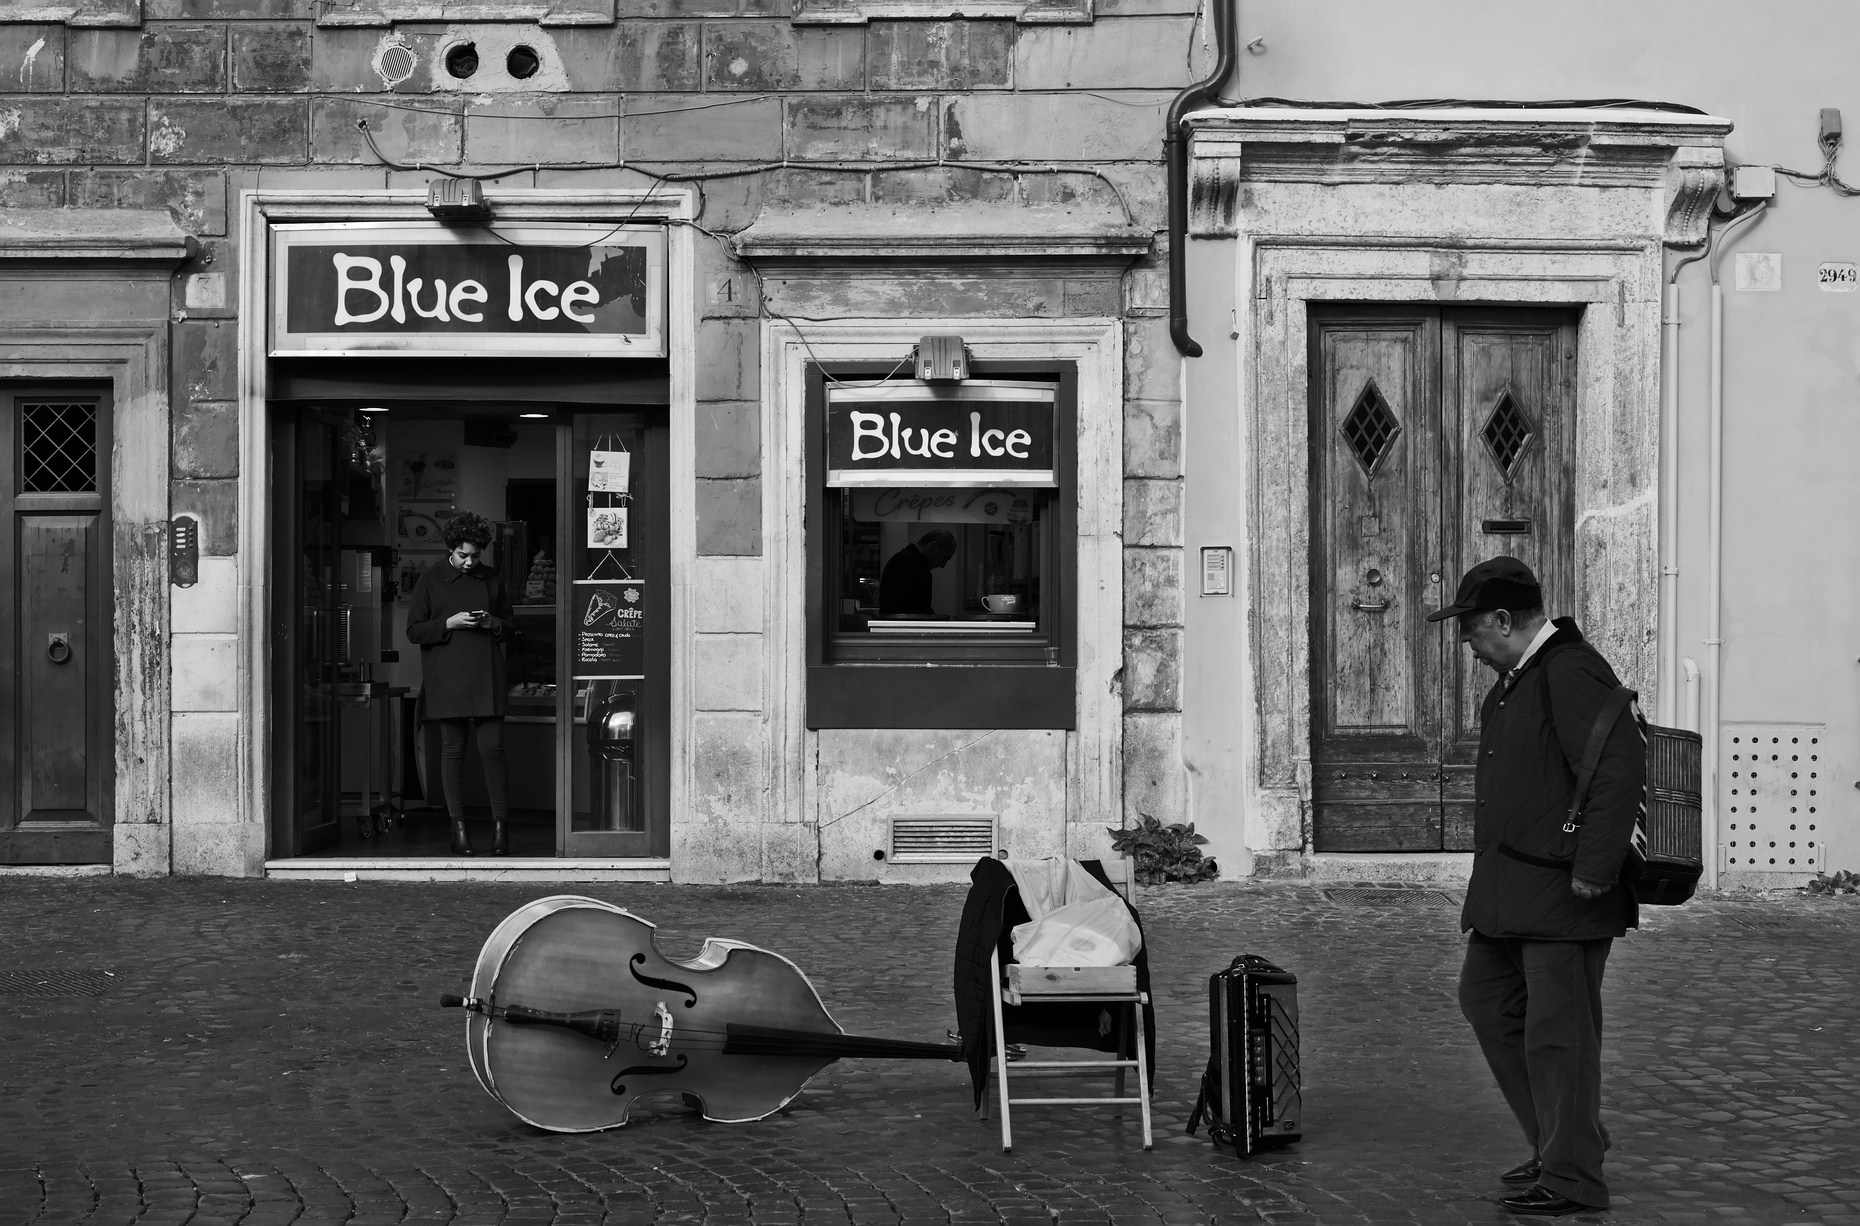 An ice cream parlour in Trastevere in Rome, with musical instruments abandoned one the road and another street musician walking past.